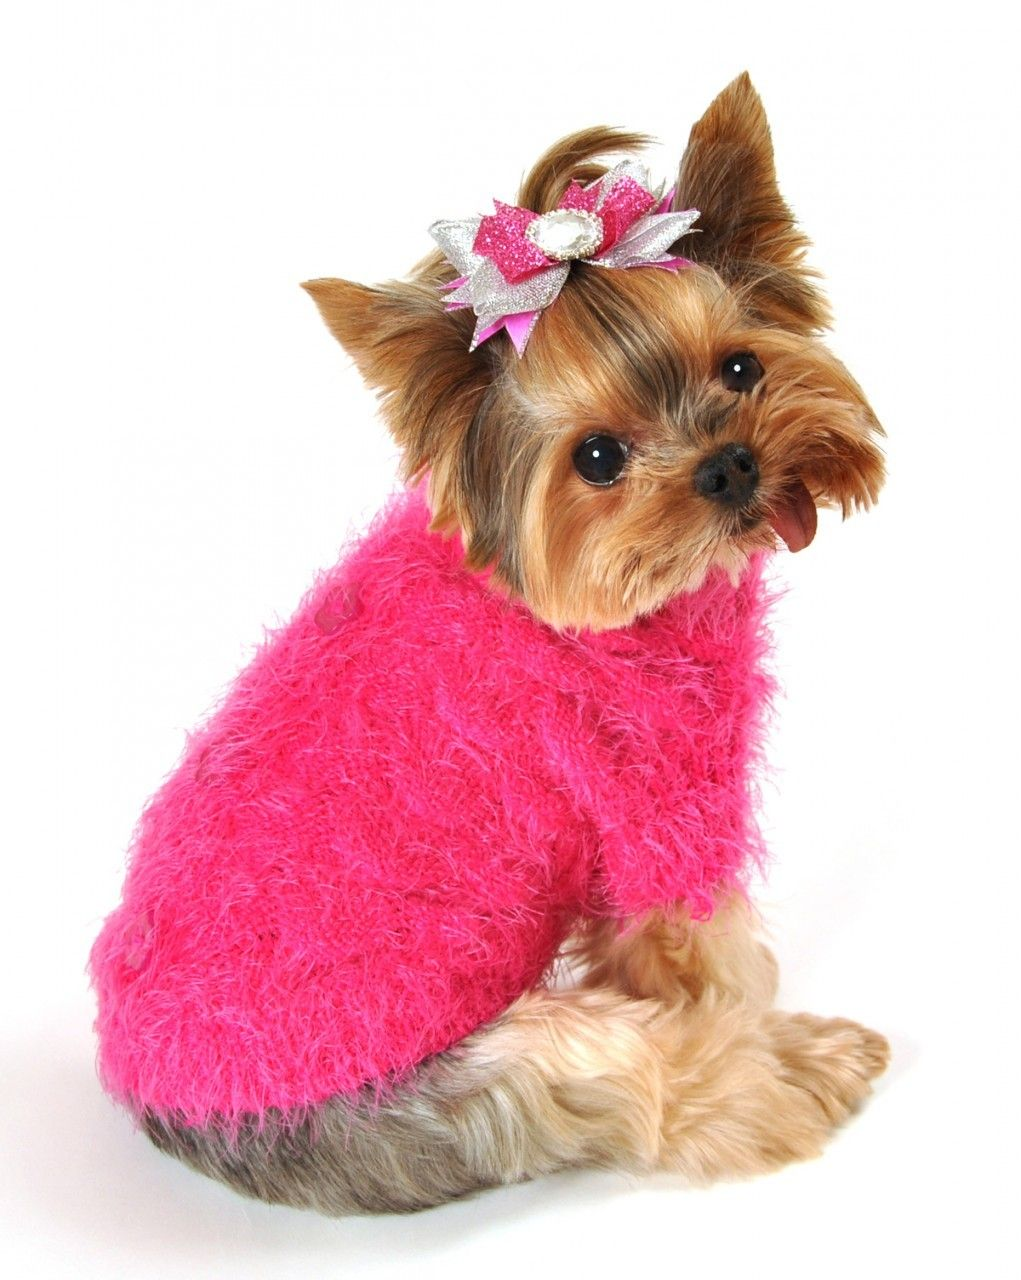 I Am Excited To Announce A New Line Of Sweaters For The Upcoming Season Coming Soon To Teacup Tutu Charm Stay Tuned For Up Dog Sweaters Diy Dog Sweater Doggy